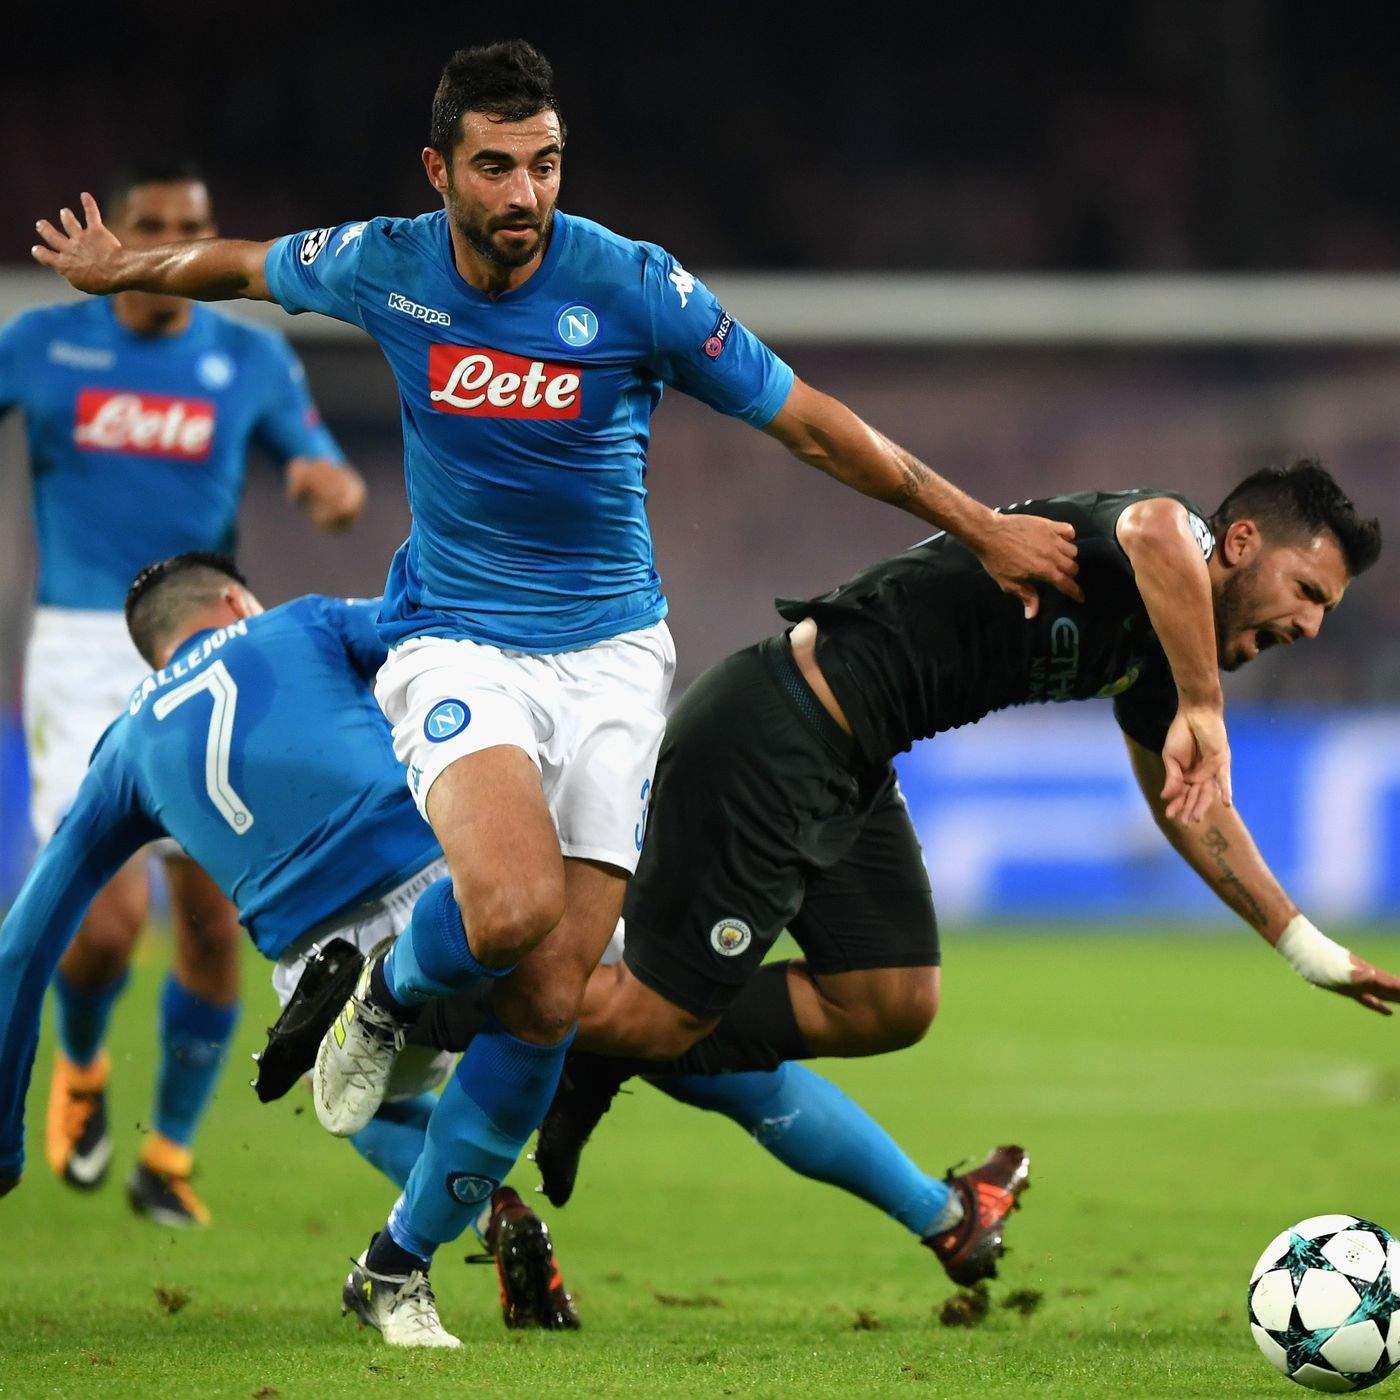 9829fc238172 Manchester City overwhelm Napoli again in 4-2 road win - The Siren s Song